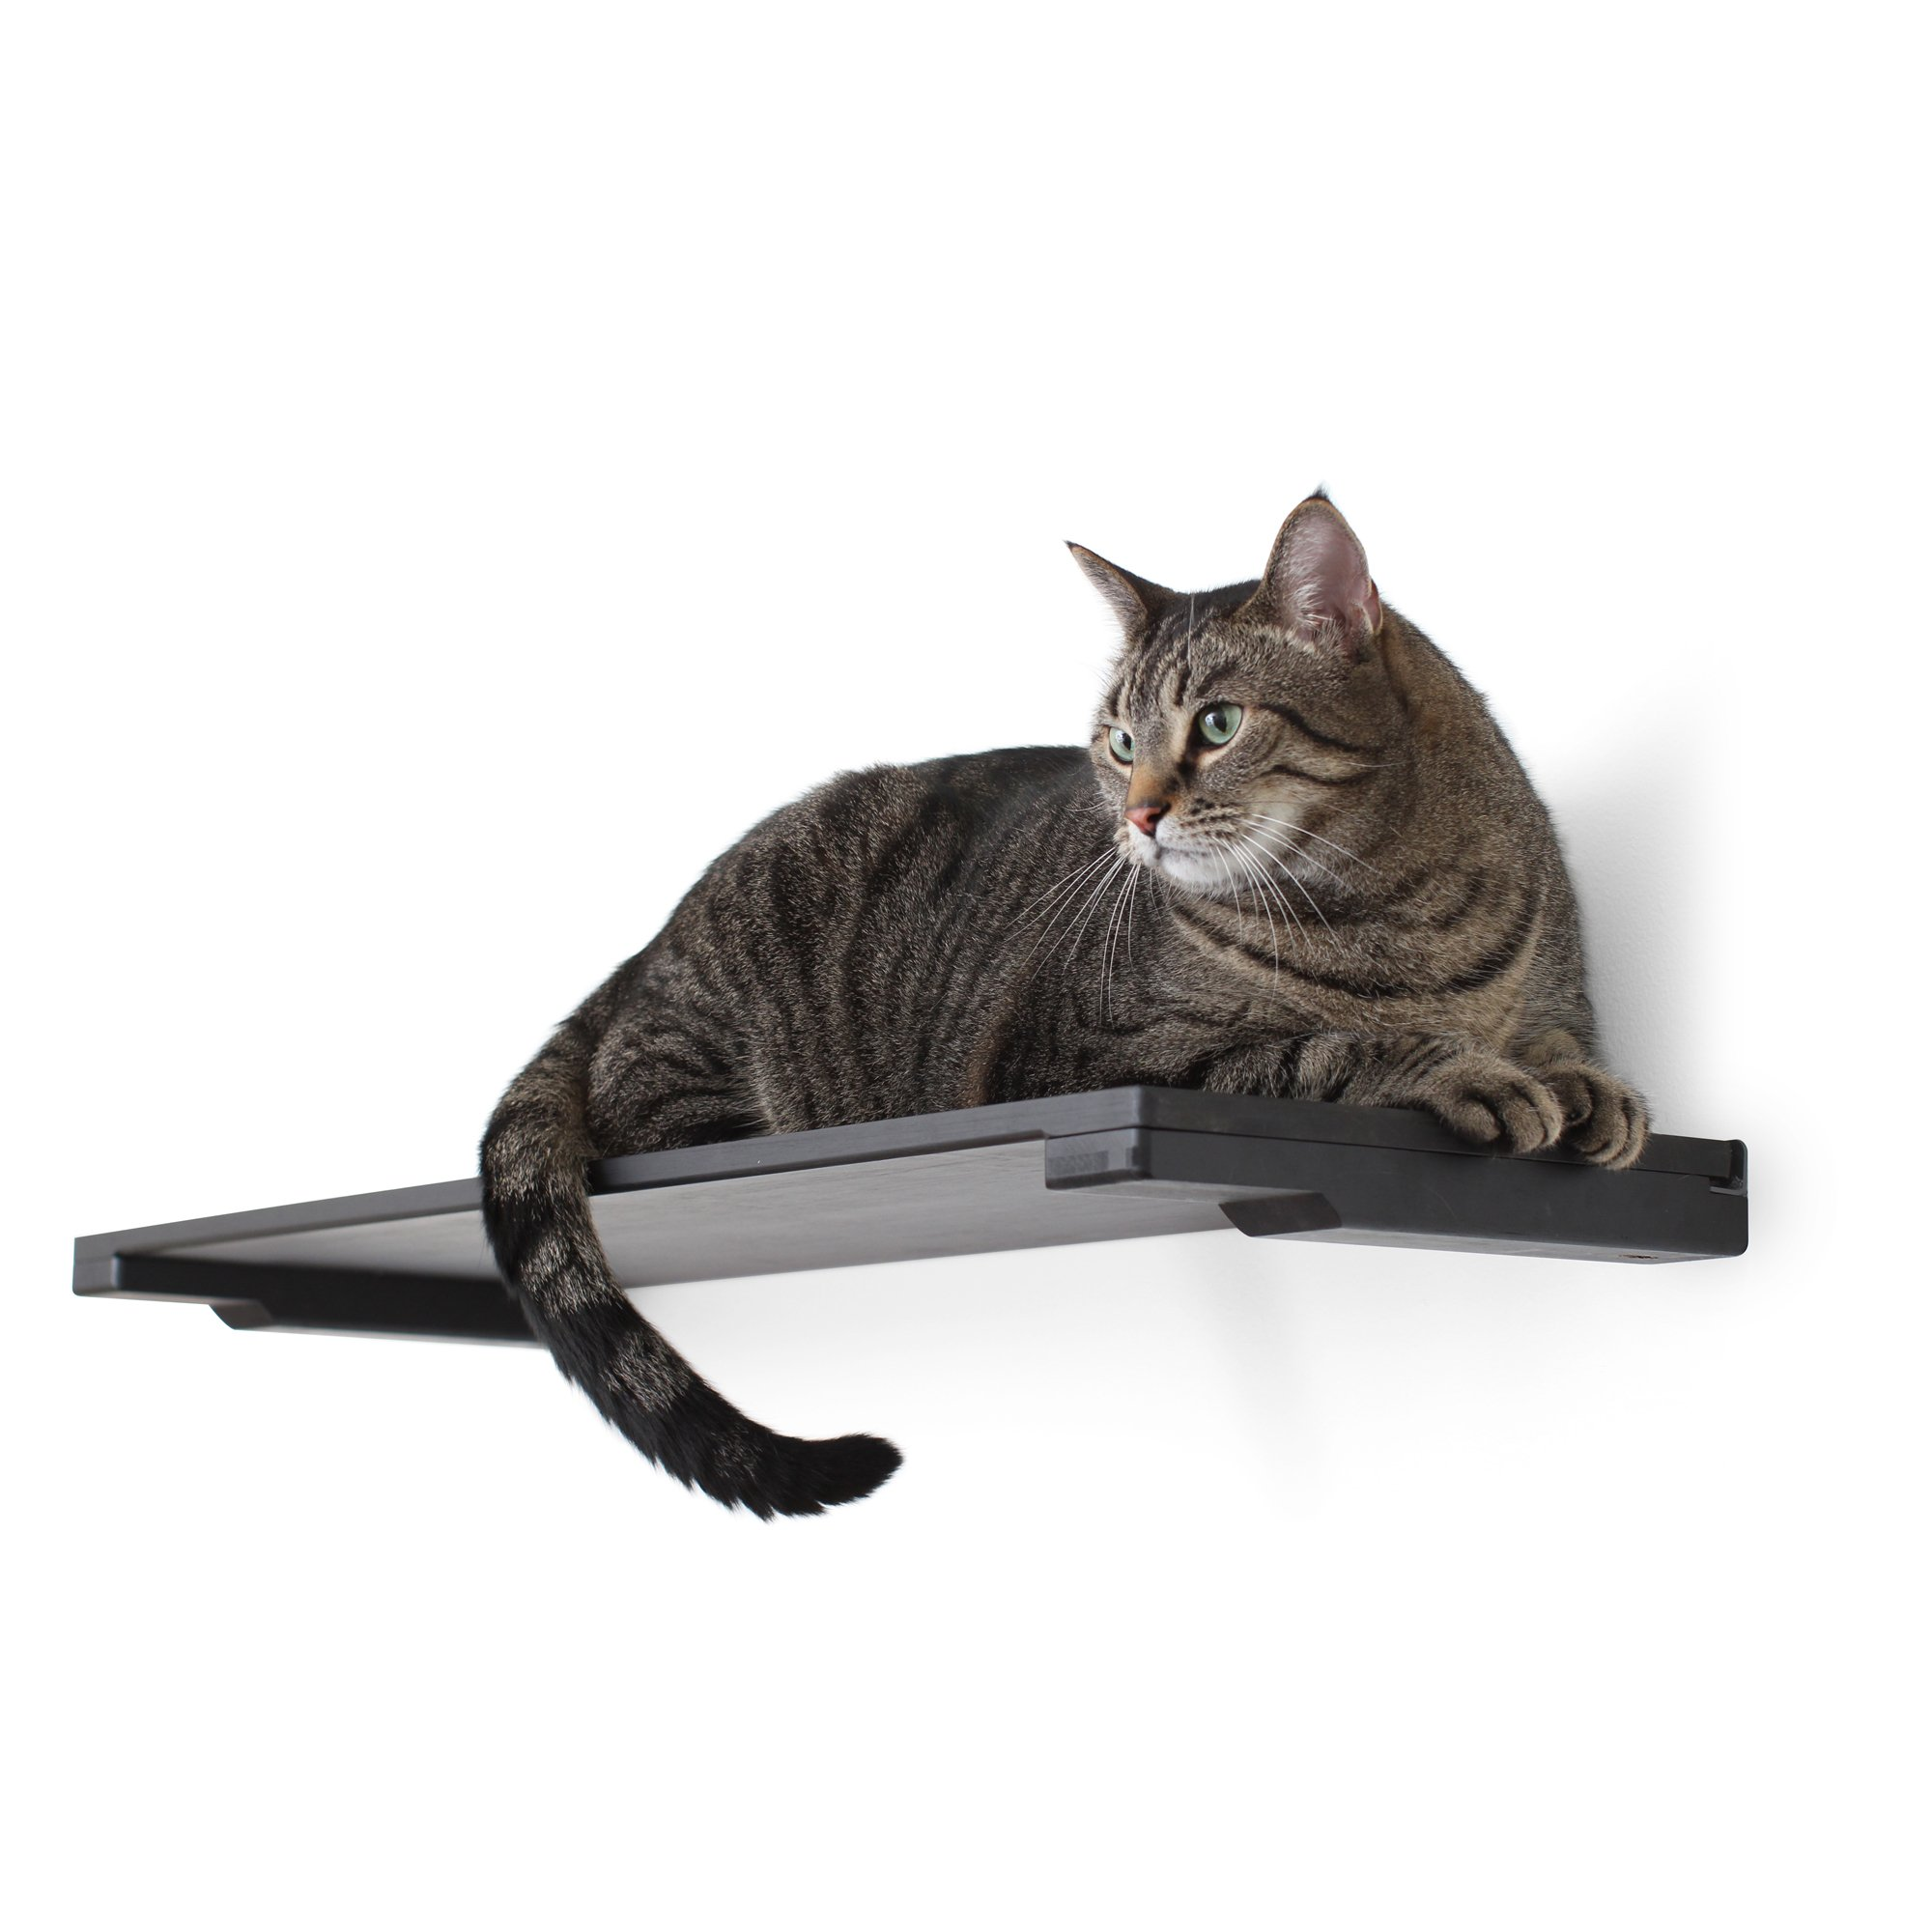 """Catastrophicreations The Cat Mod 18"""" Solid Wood Shelf For Cats In Onyx, 18.5 In W X 3 In H, 7 Lb"""